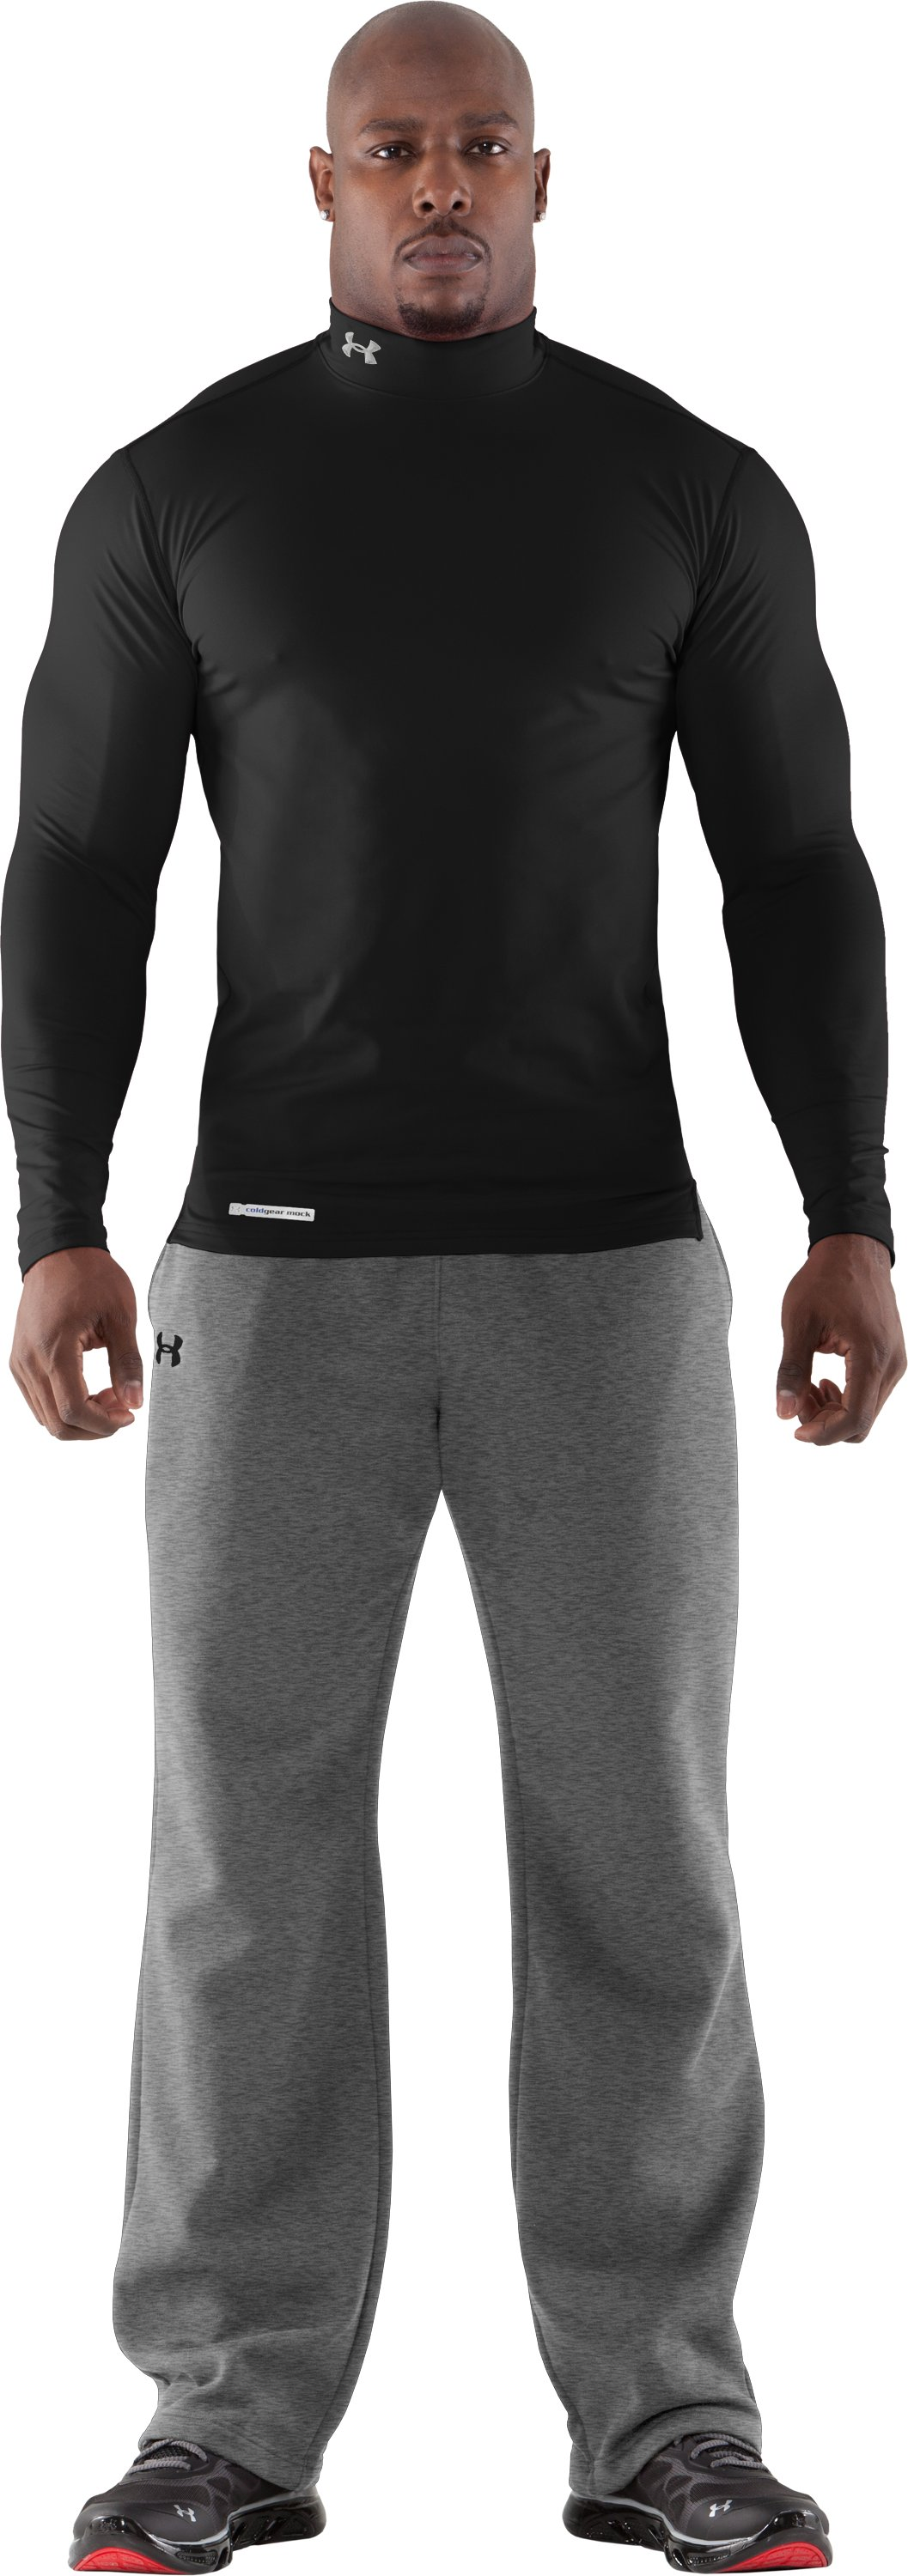 Men's ColdGear® Fitted Long Sleeve Mock, Black